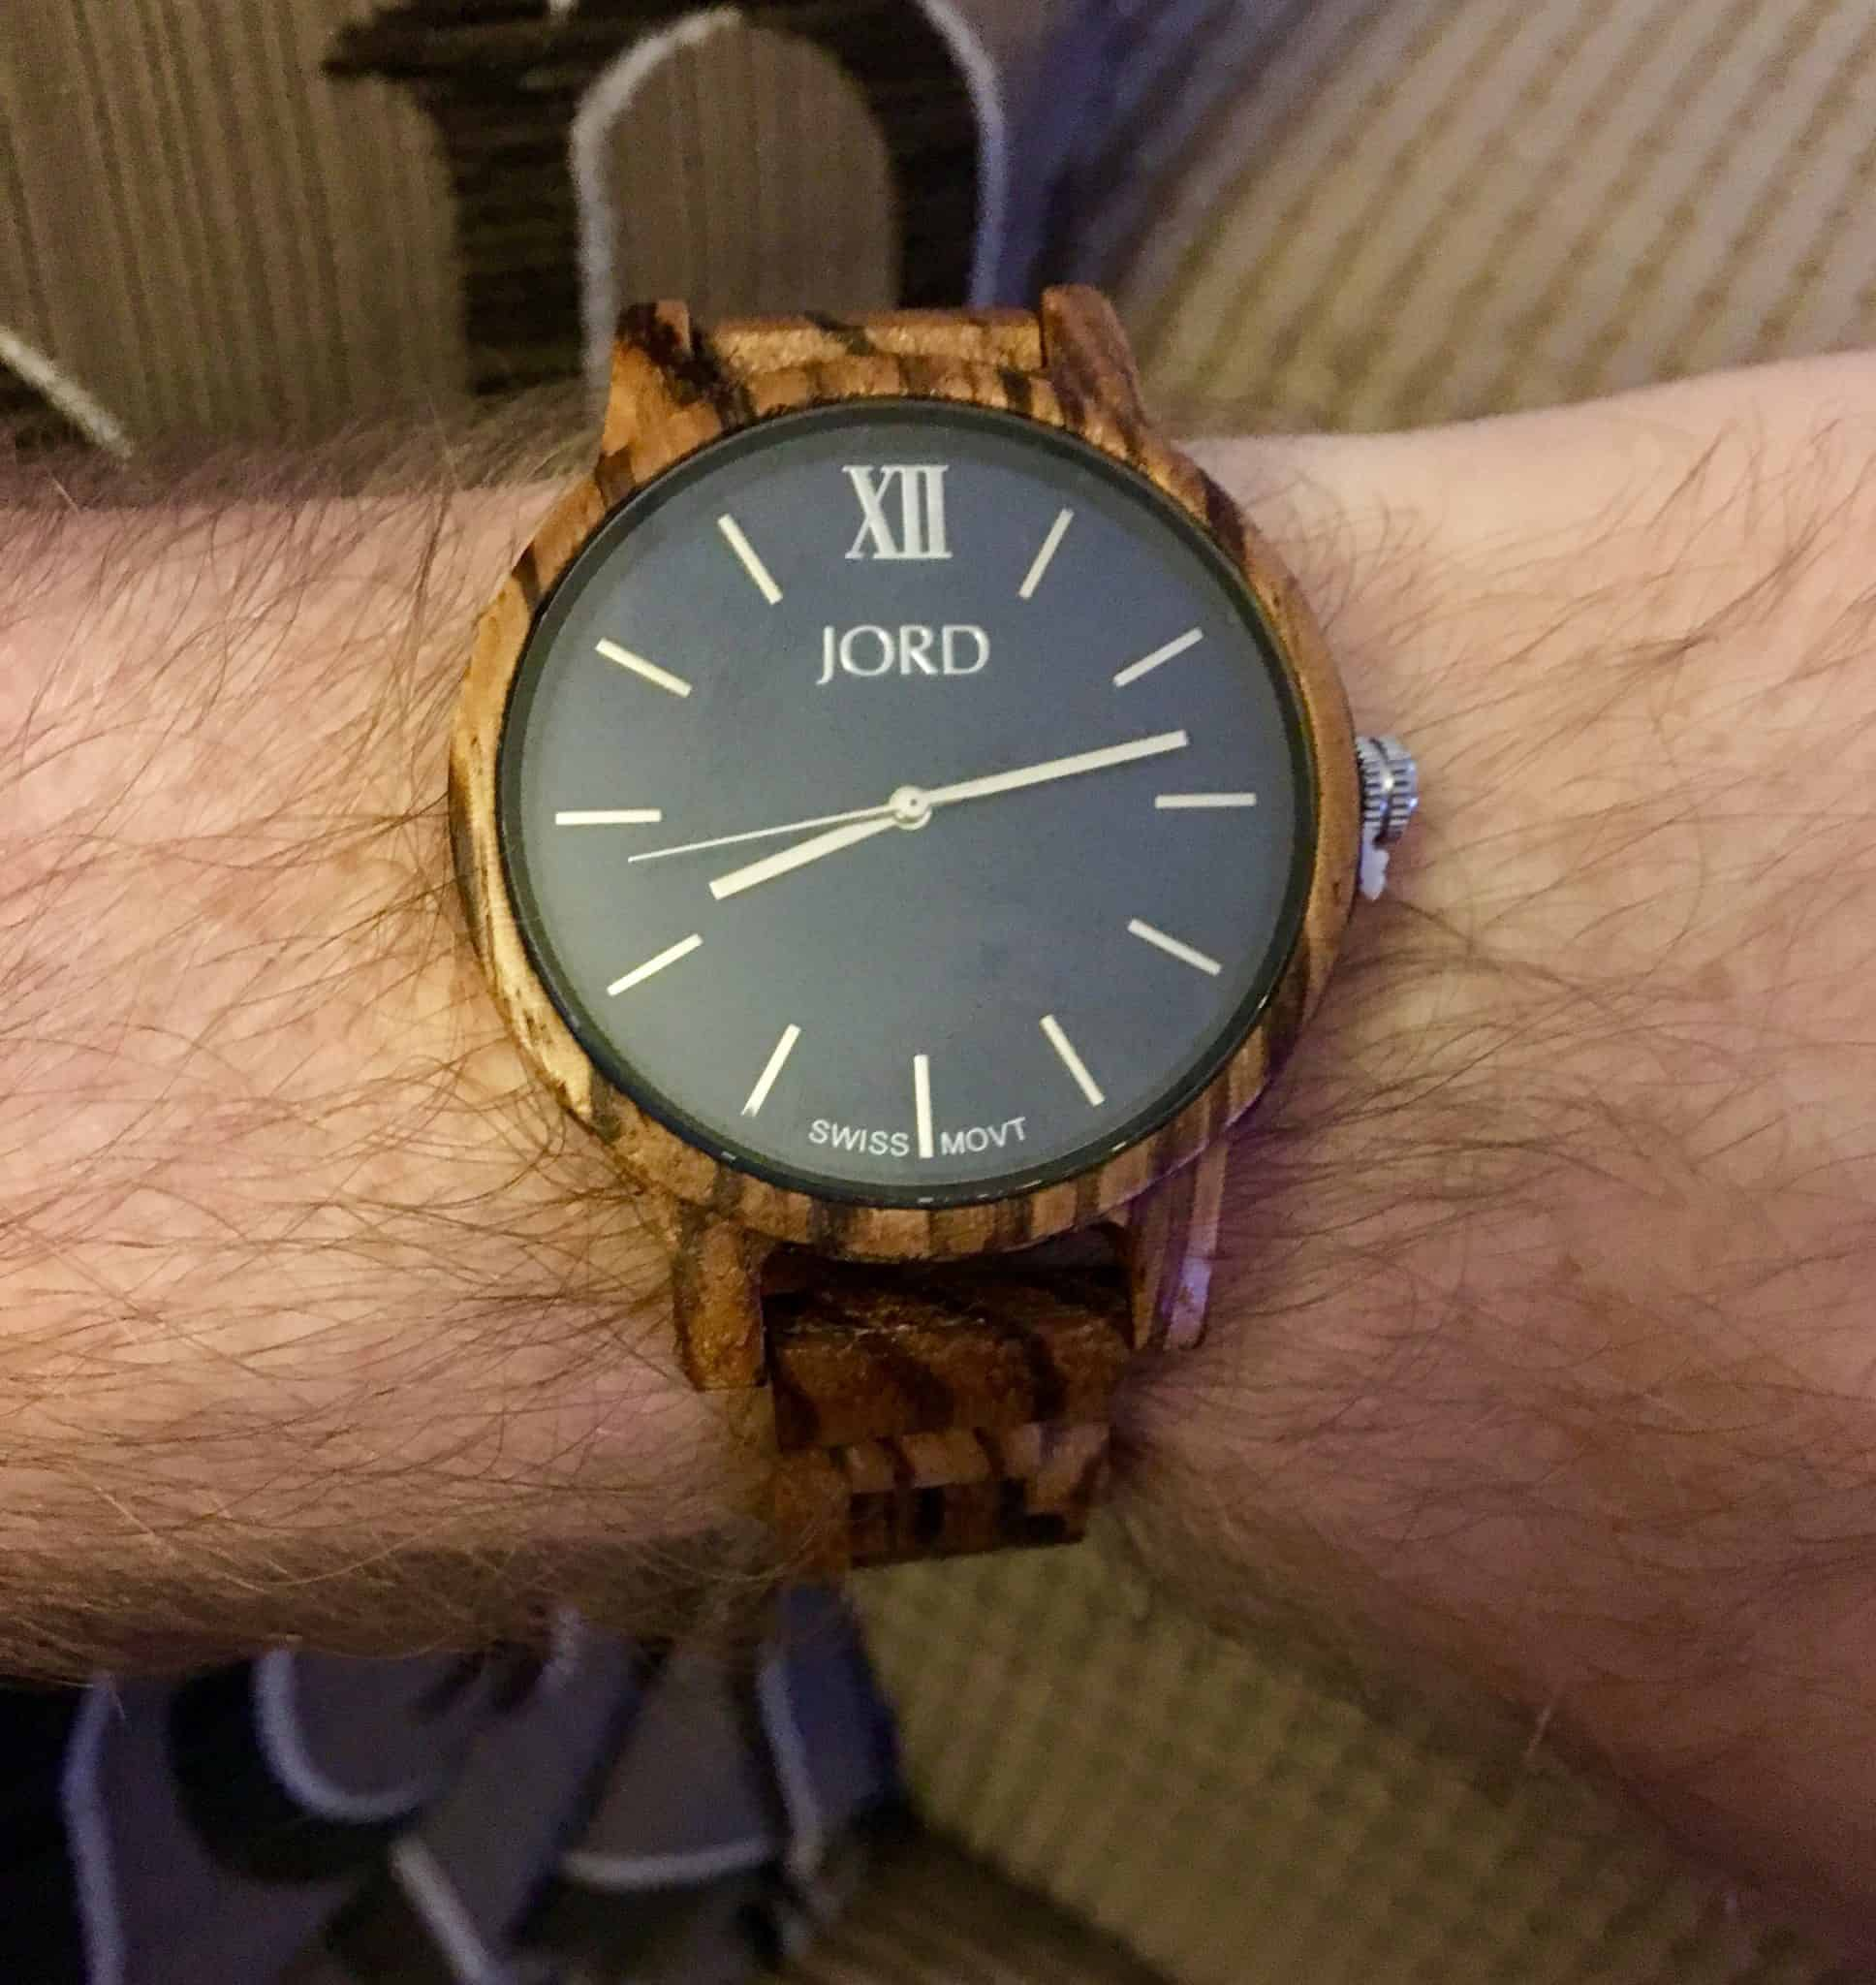 The Frankie JORD Watch on my husbands wrist